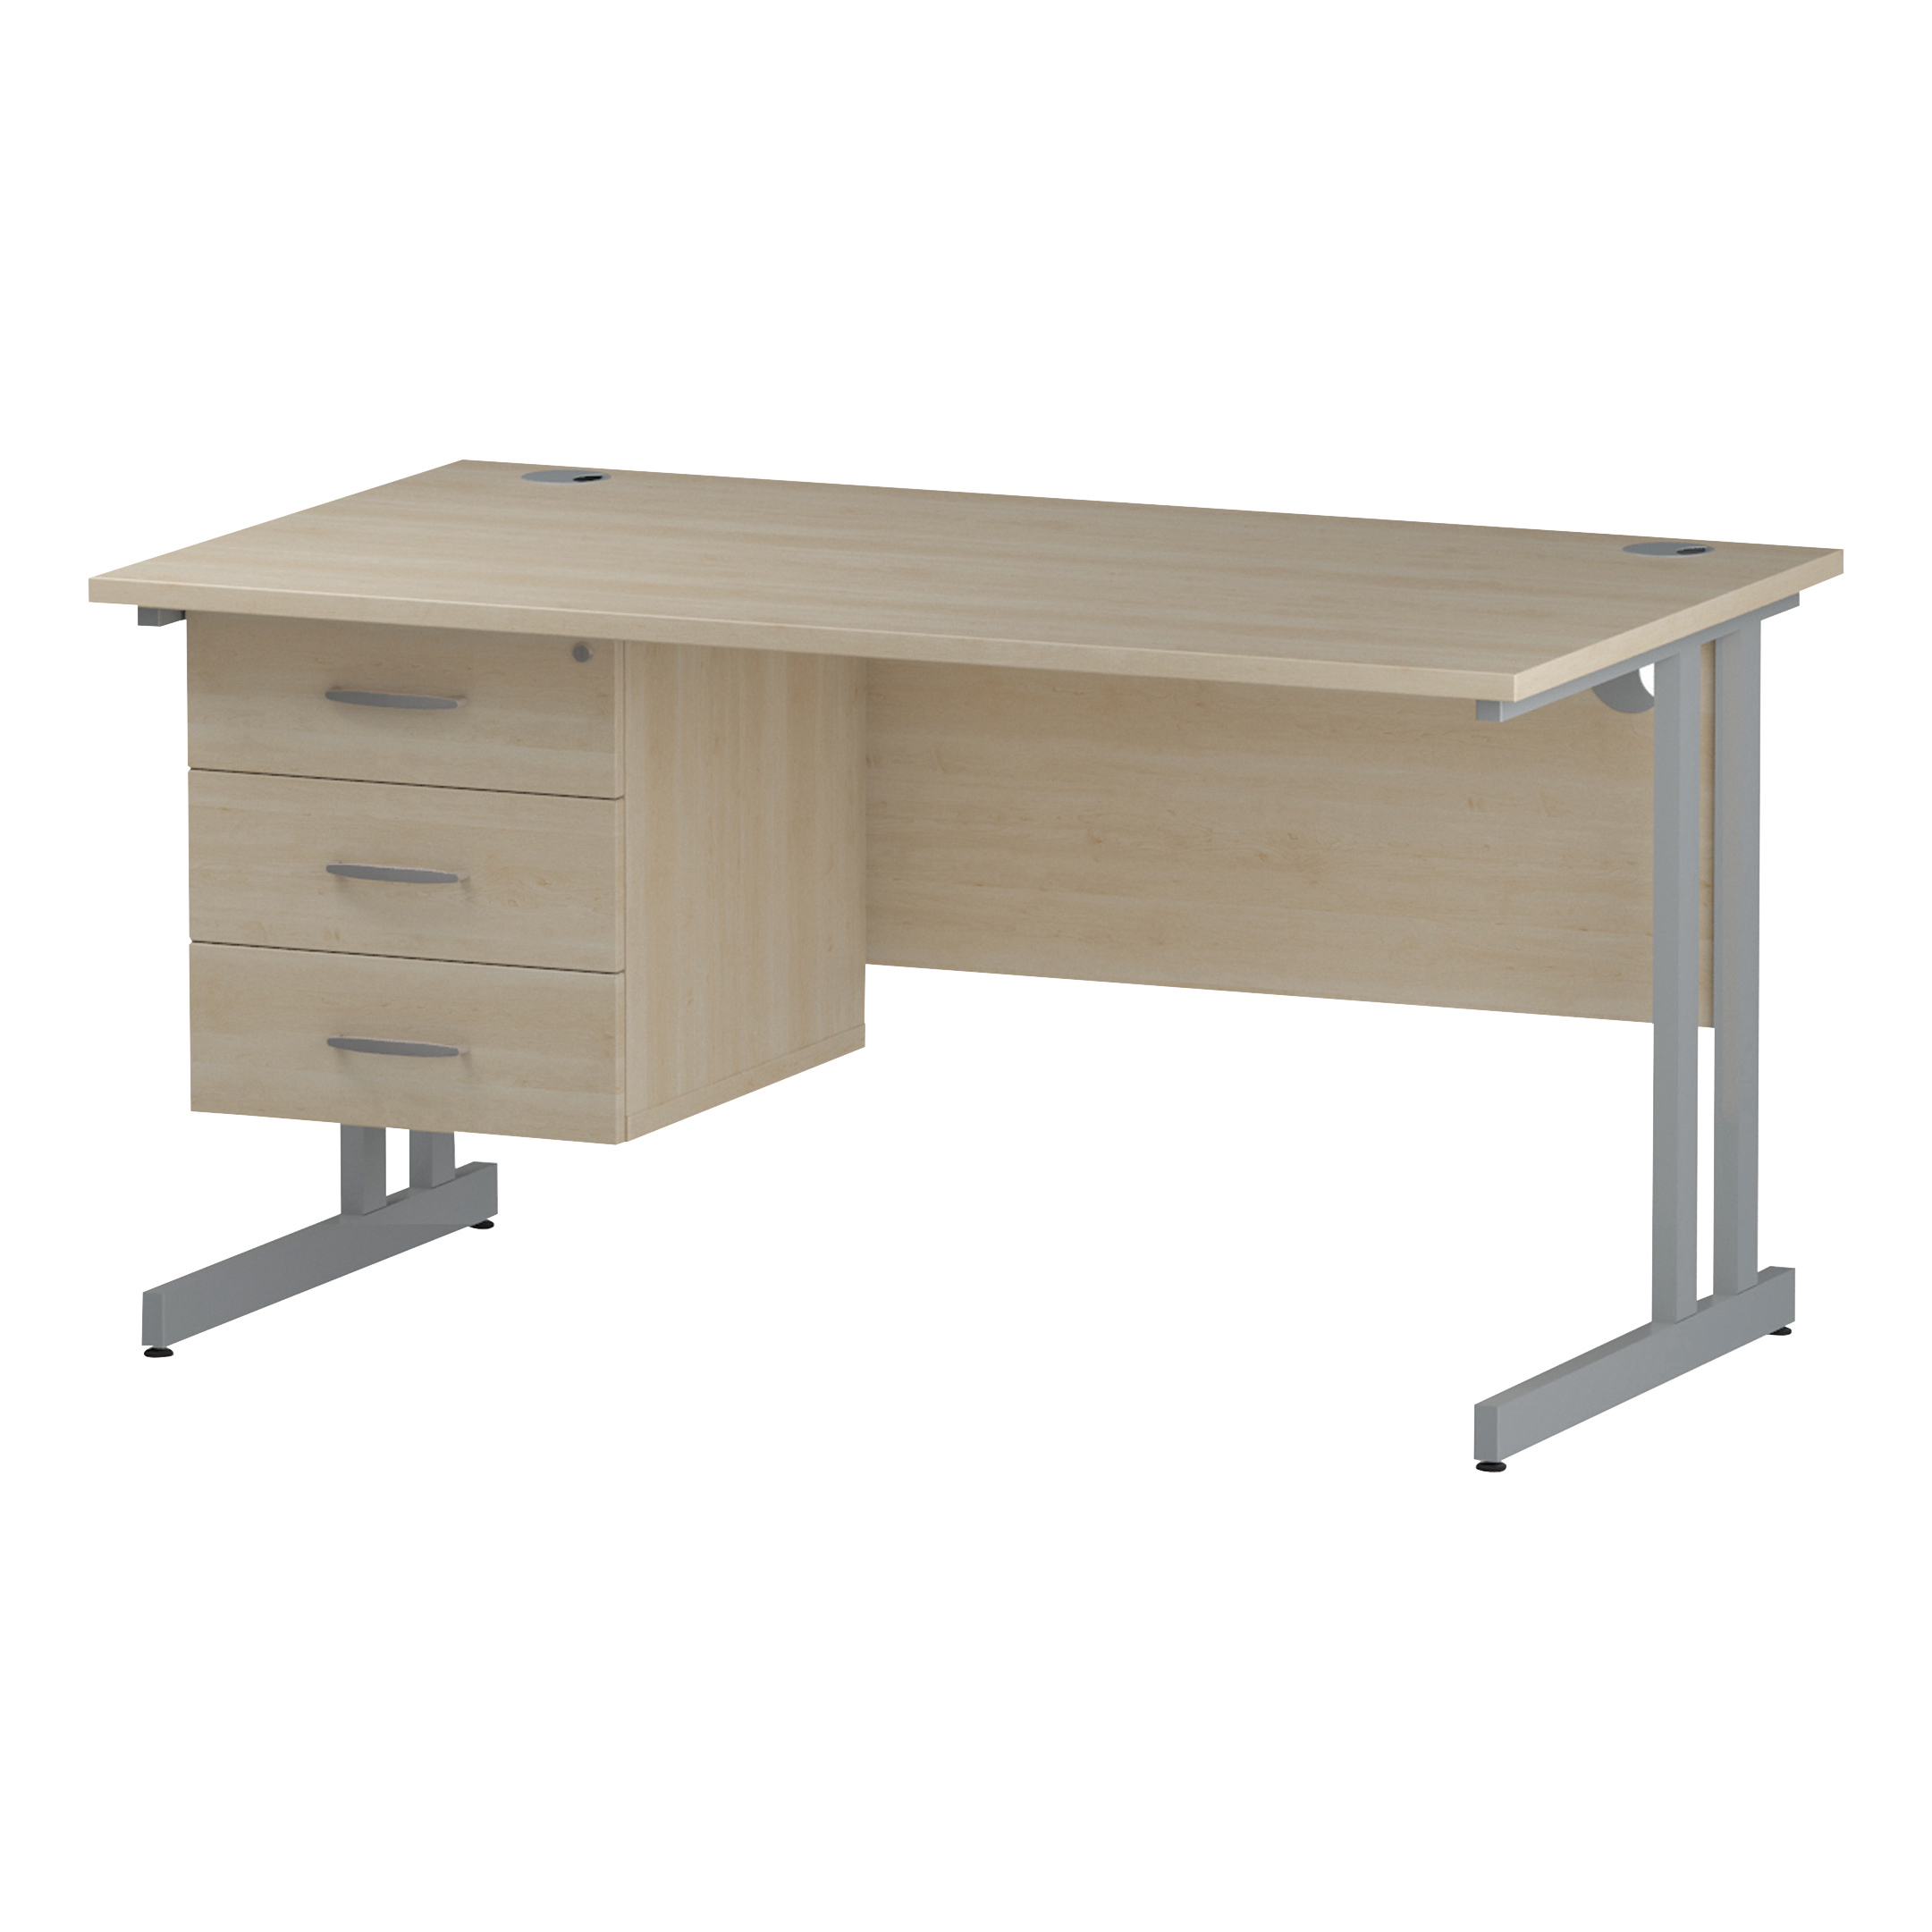 Trexus Rectangular Desk Silver Cantilever Leg 1400x800mm Fixed Pedestal 3 Drawers Maple Ref I002440